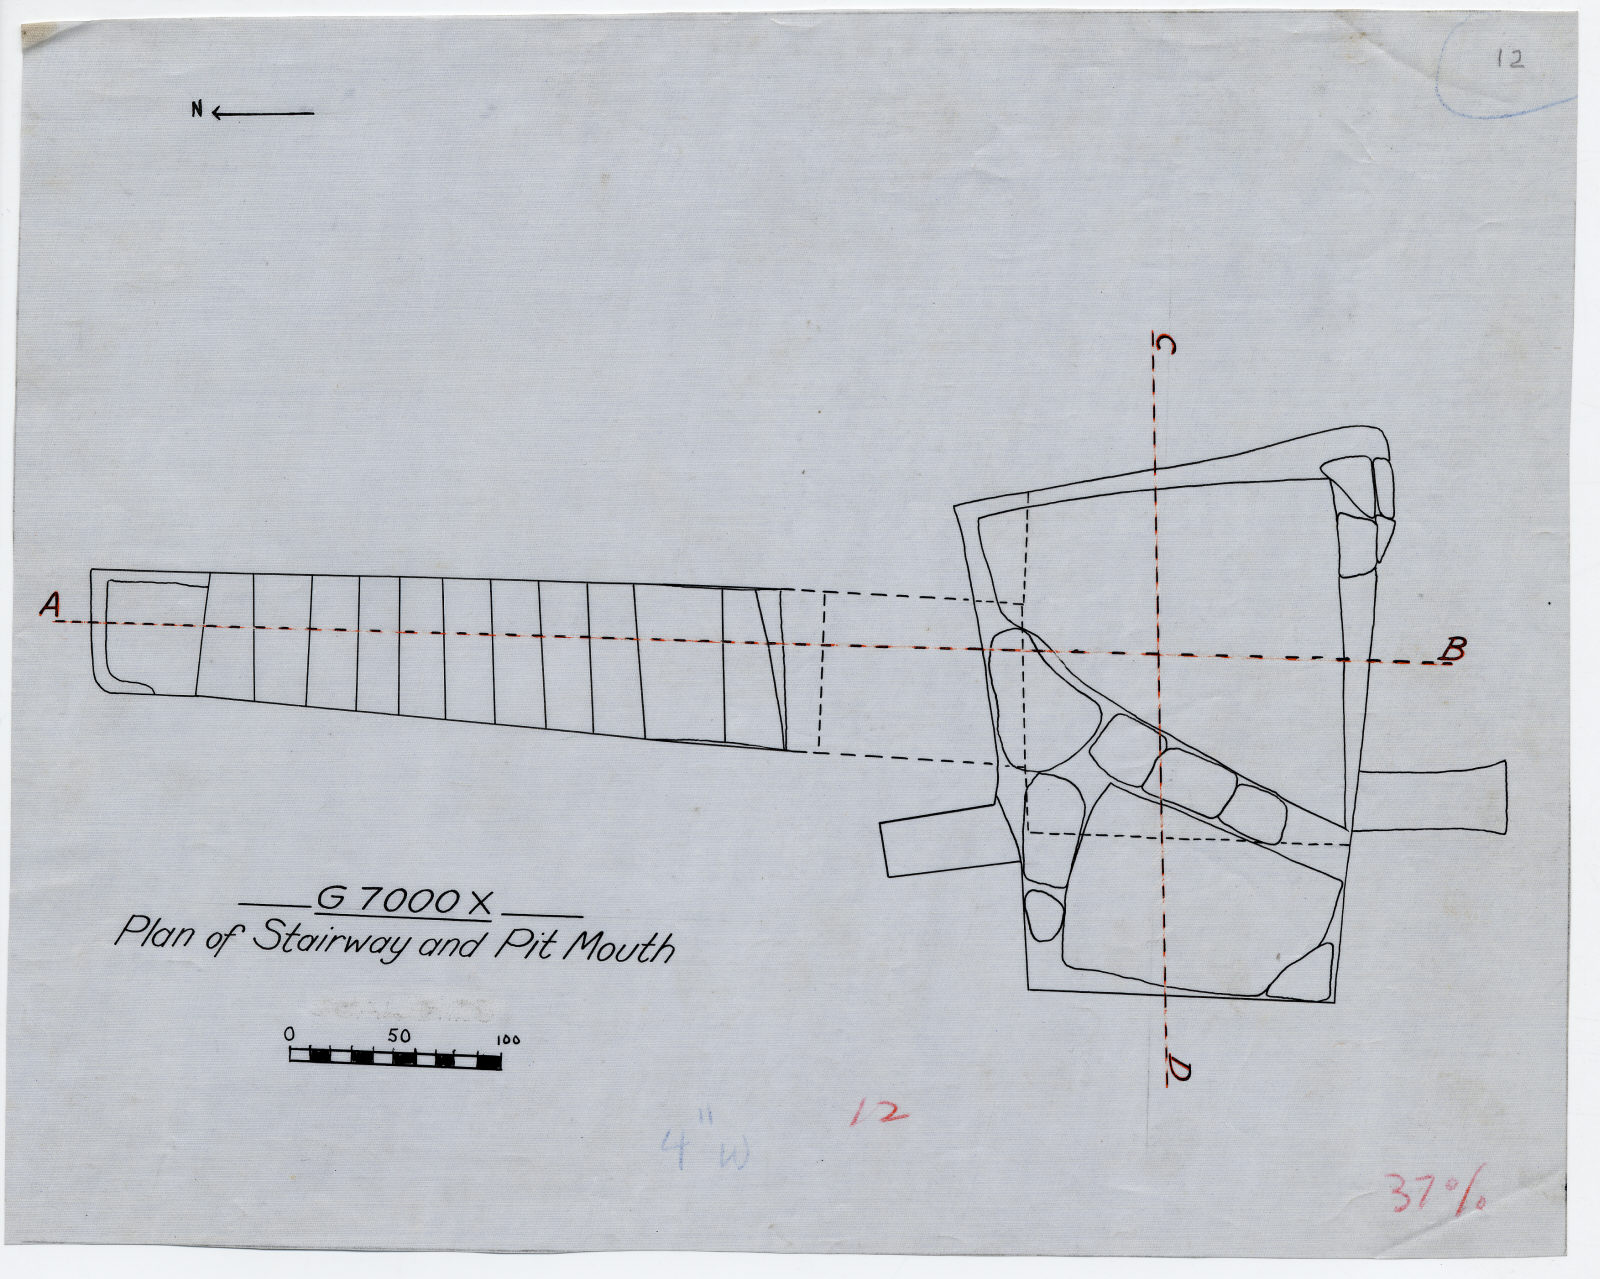 Maps and plans: G 7000 X: Plan of stairway and top of shaft